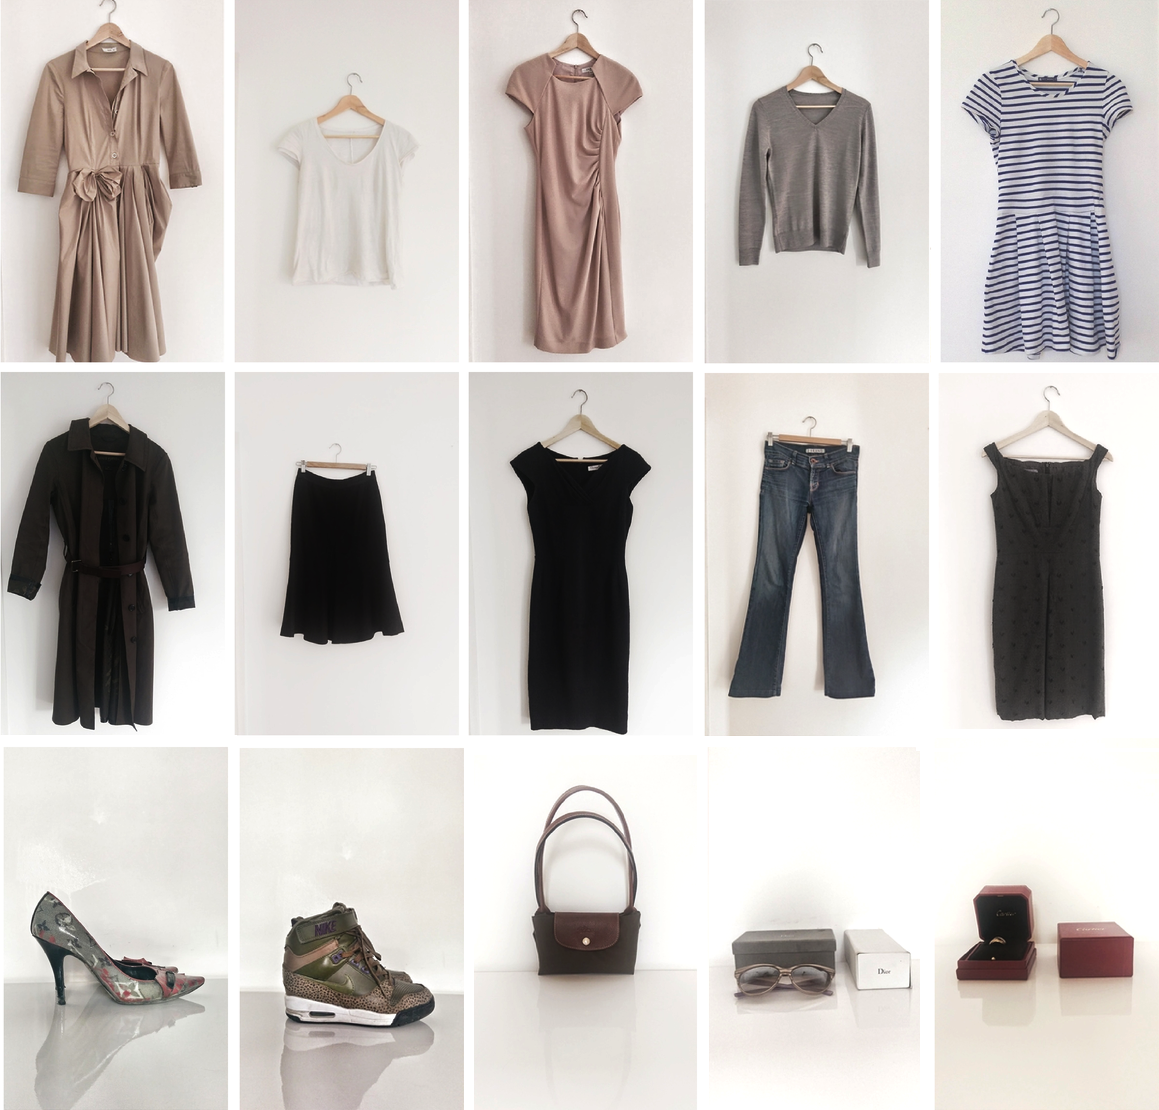 10 item wardrobe - neutral monochrome